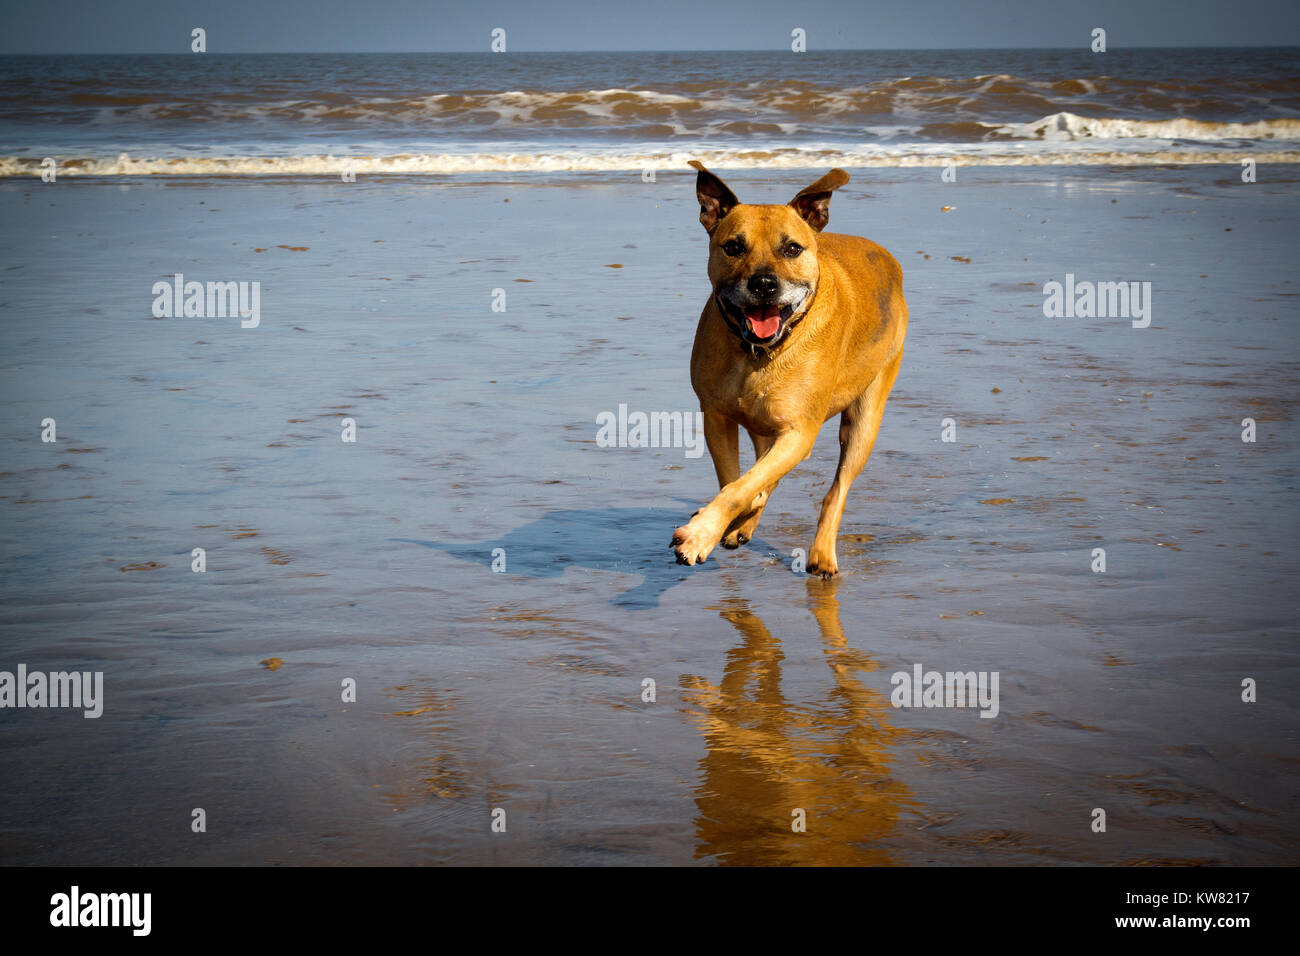 Staffordshire Bull Terrier running across wet sand near the sea - Stock Image